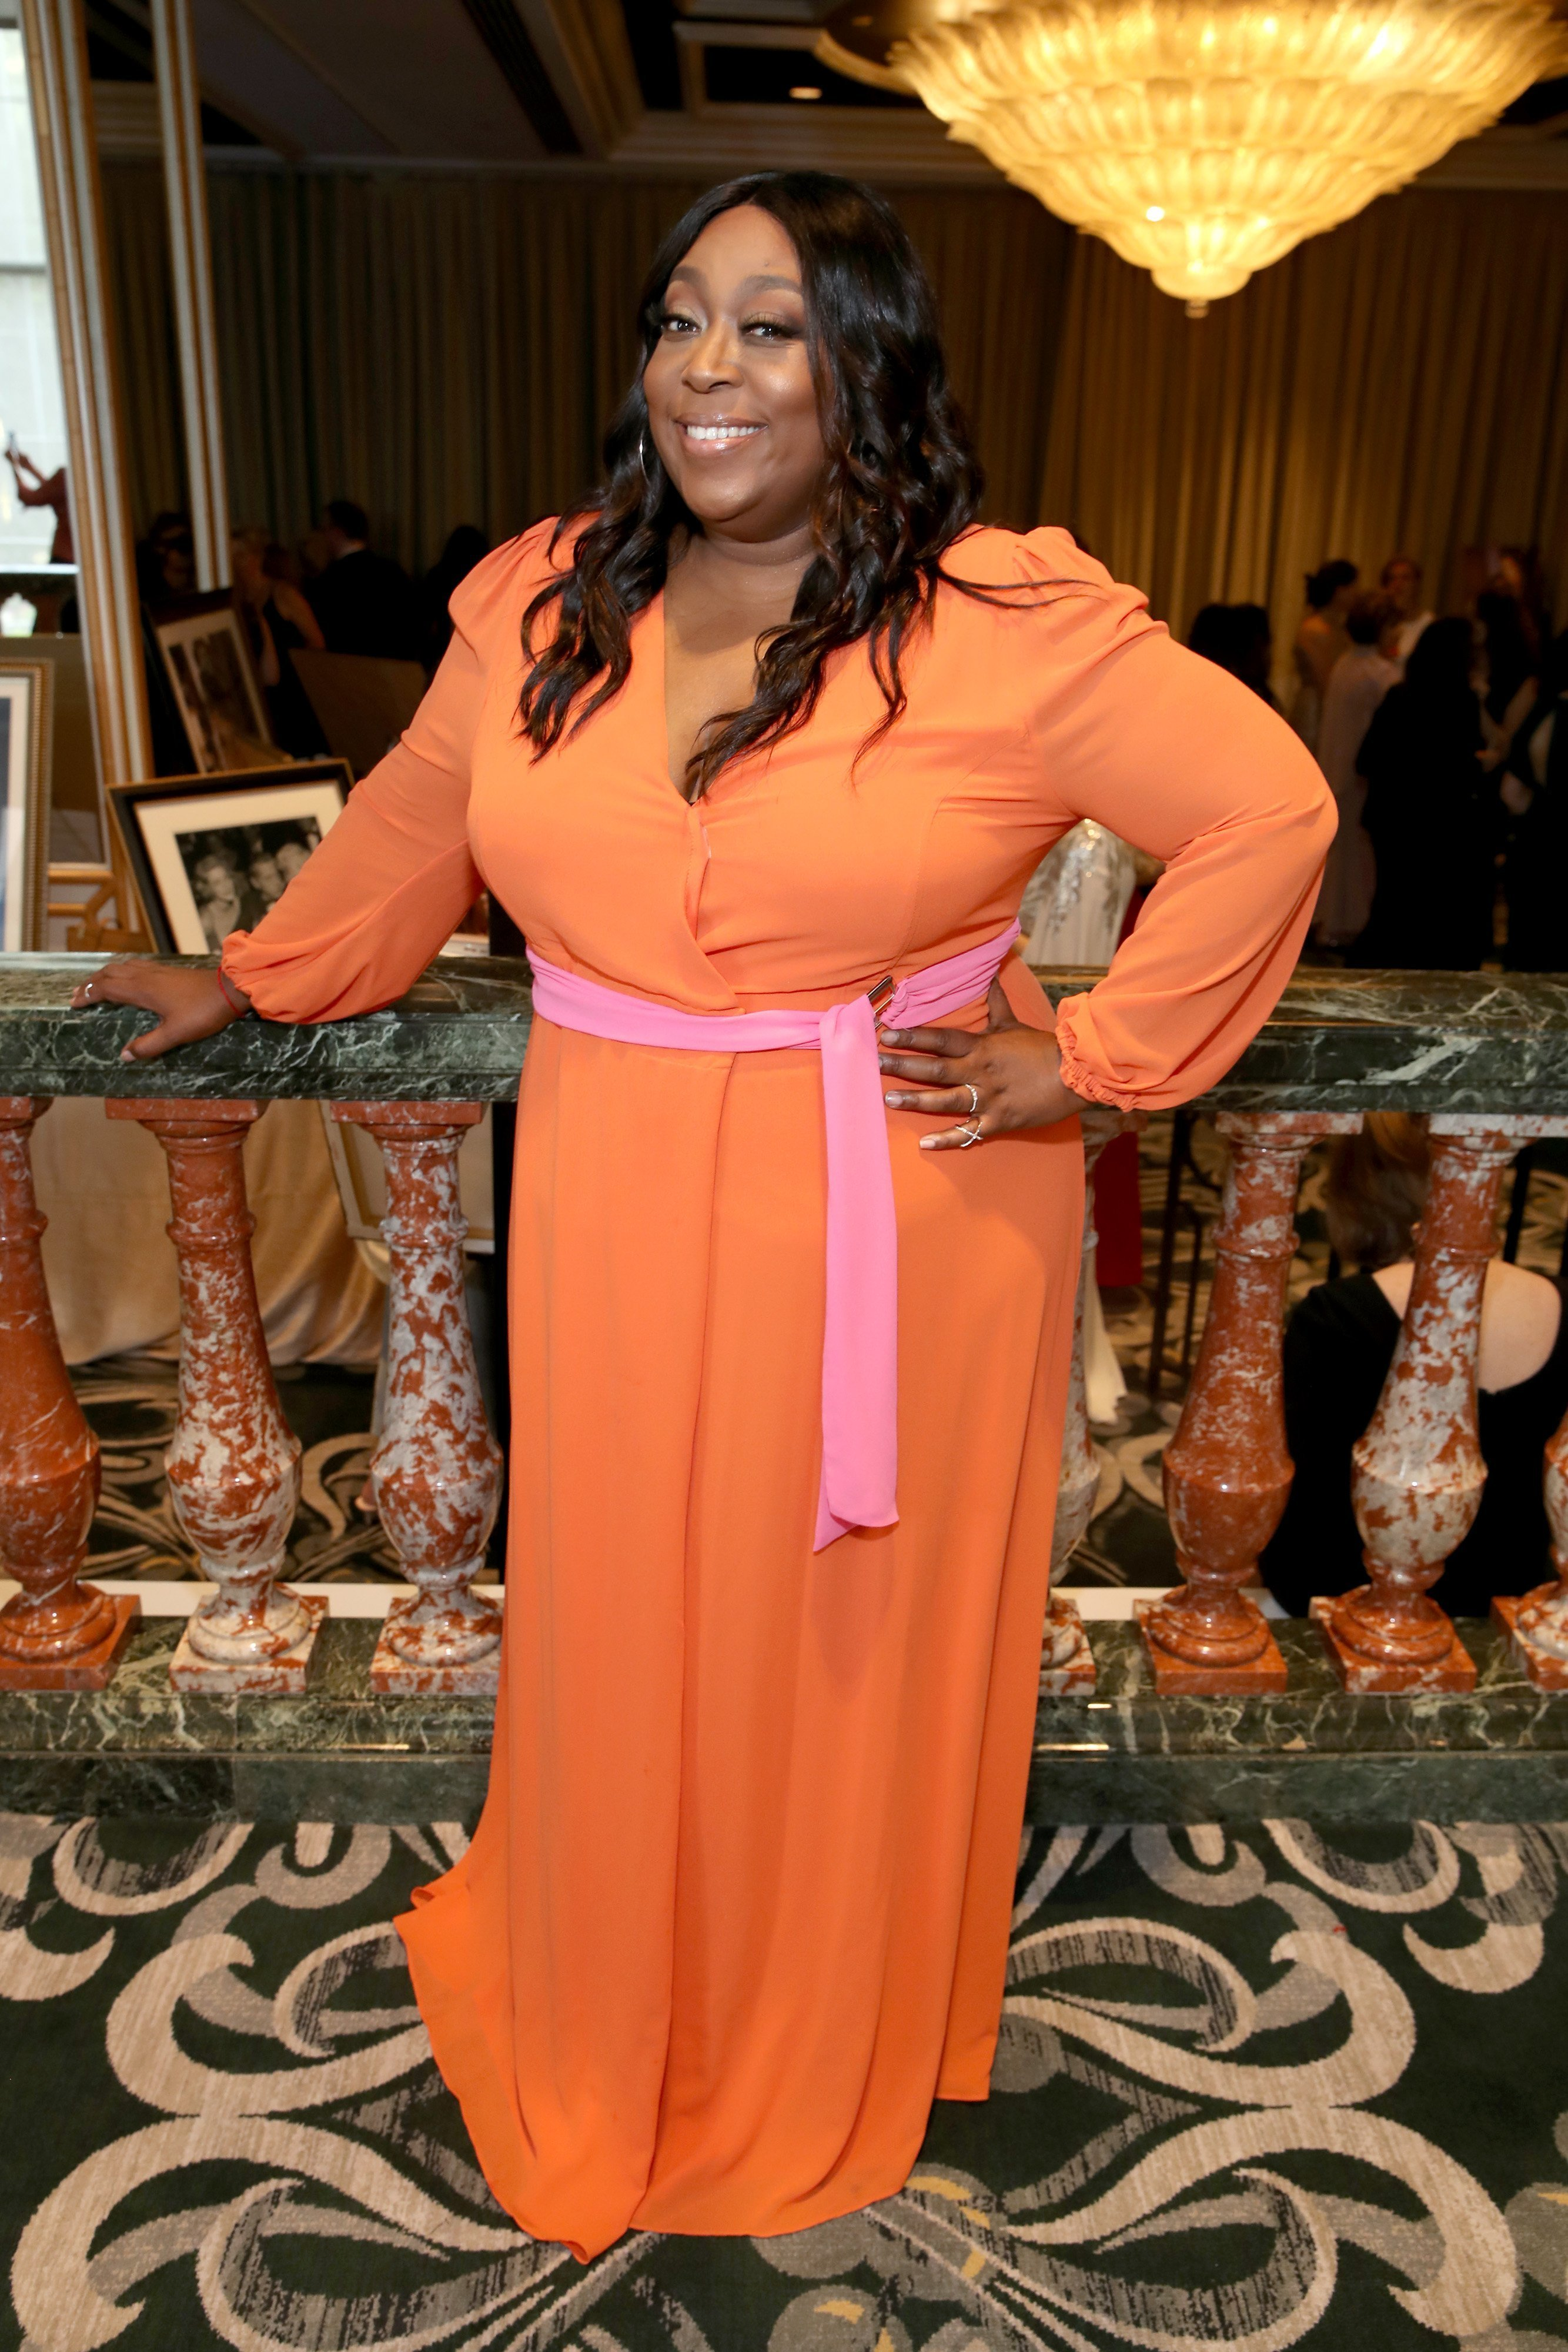 Loni Love at the 44th Annual Gracies Awards on May 21, 2019 in California.   Source: Getty Images